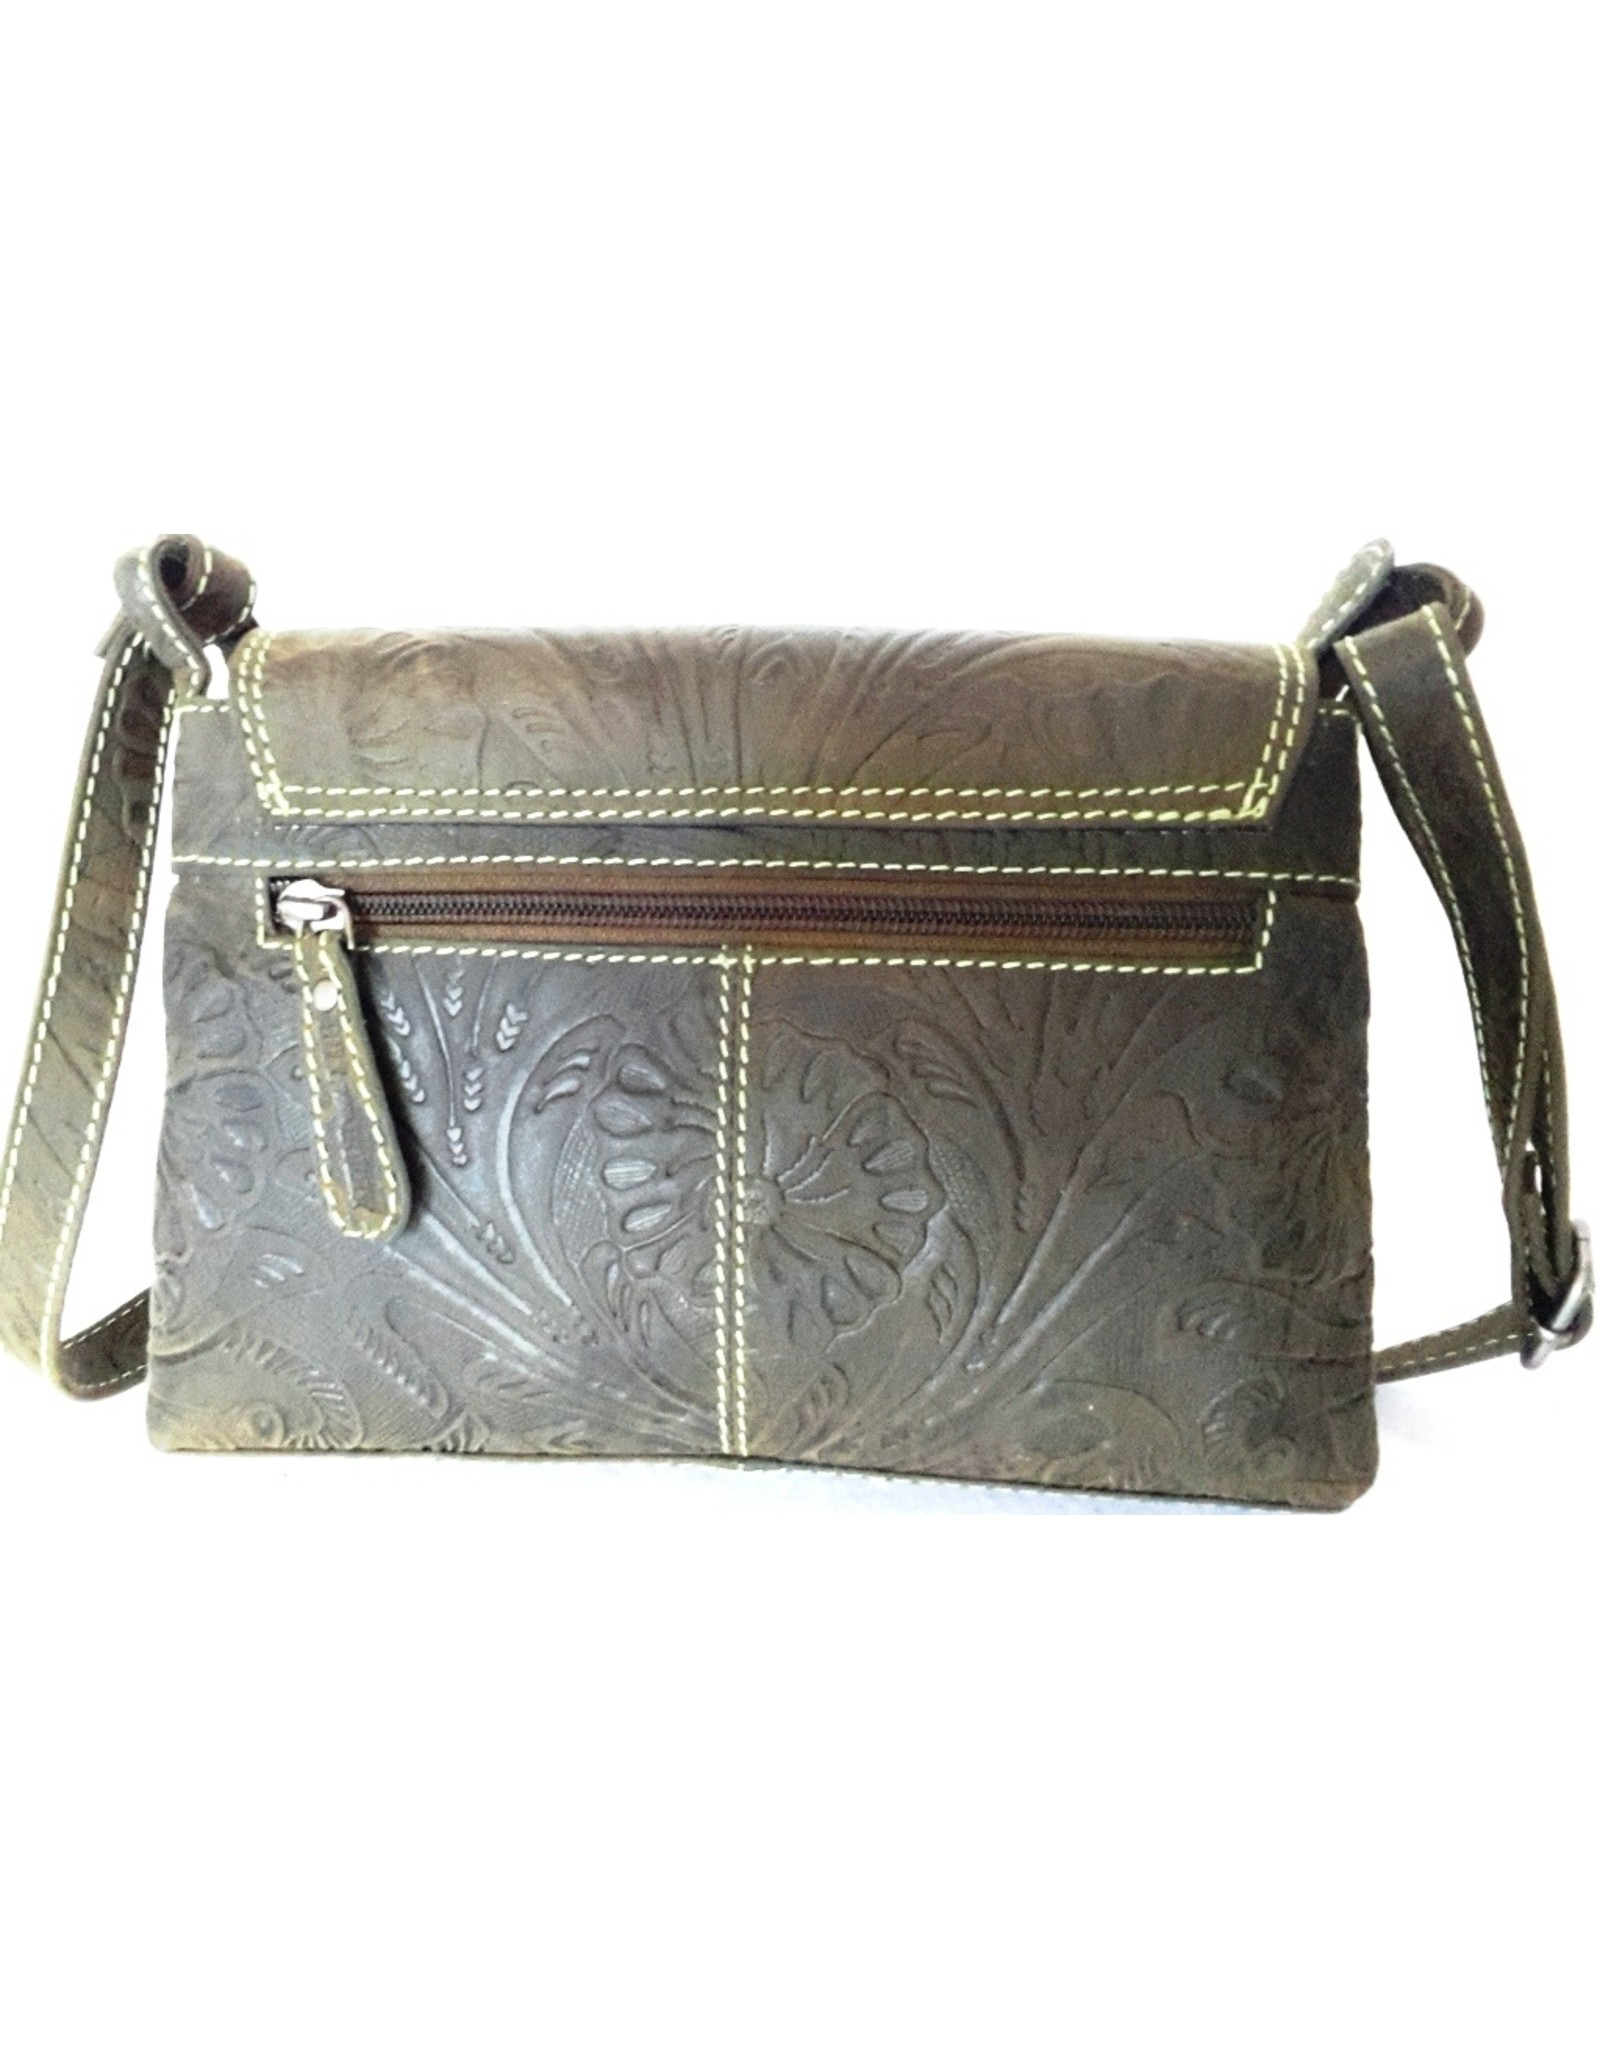 HillBurry Leather shoulder bags Leather crossbody bags - HillBurry shoulder bag with embossed flowers (green)